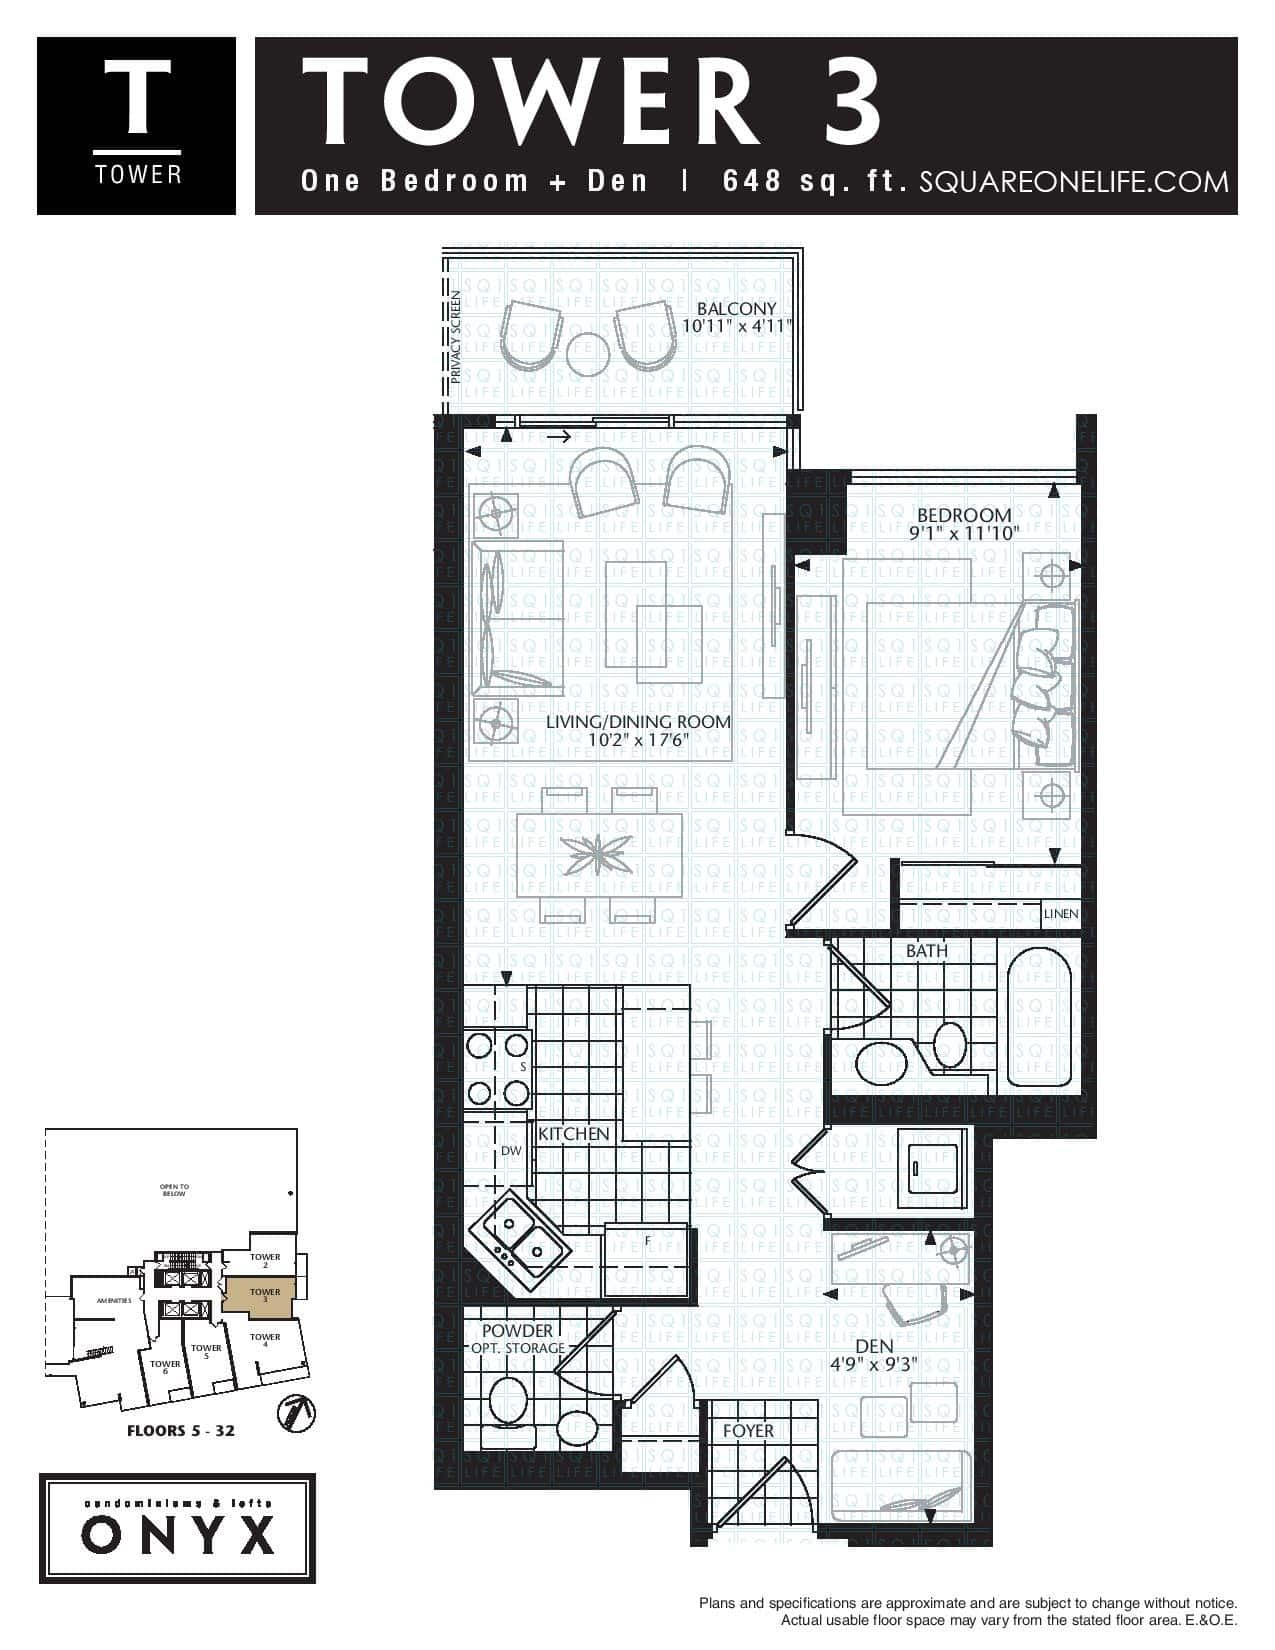 223-Webb-Dr-Onyx-Condo-Floorplan-Tower-3-1-Bed-1-Den-2-Bath onyx condo Onyx Condo 223 Webb Dr Onyx Condo Floorplan Tower 3 1 Bed 1 Den 2 Bath